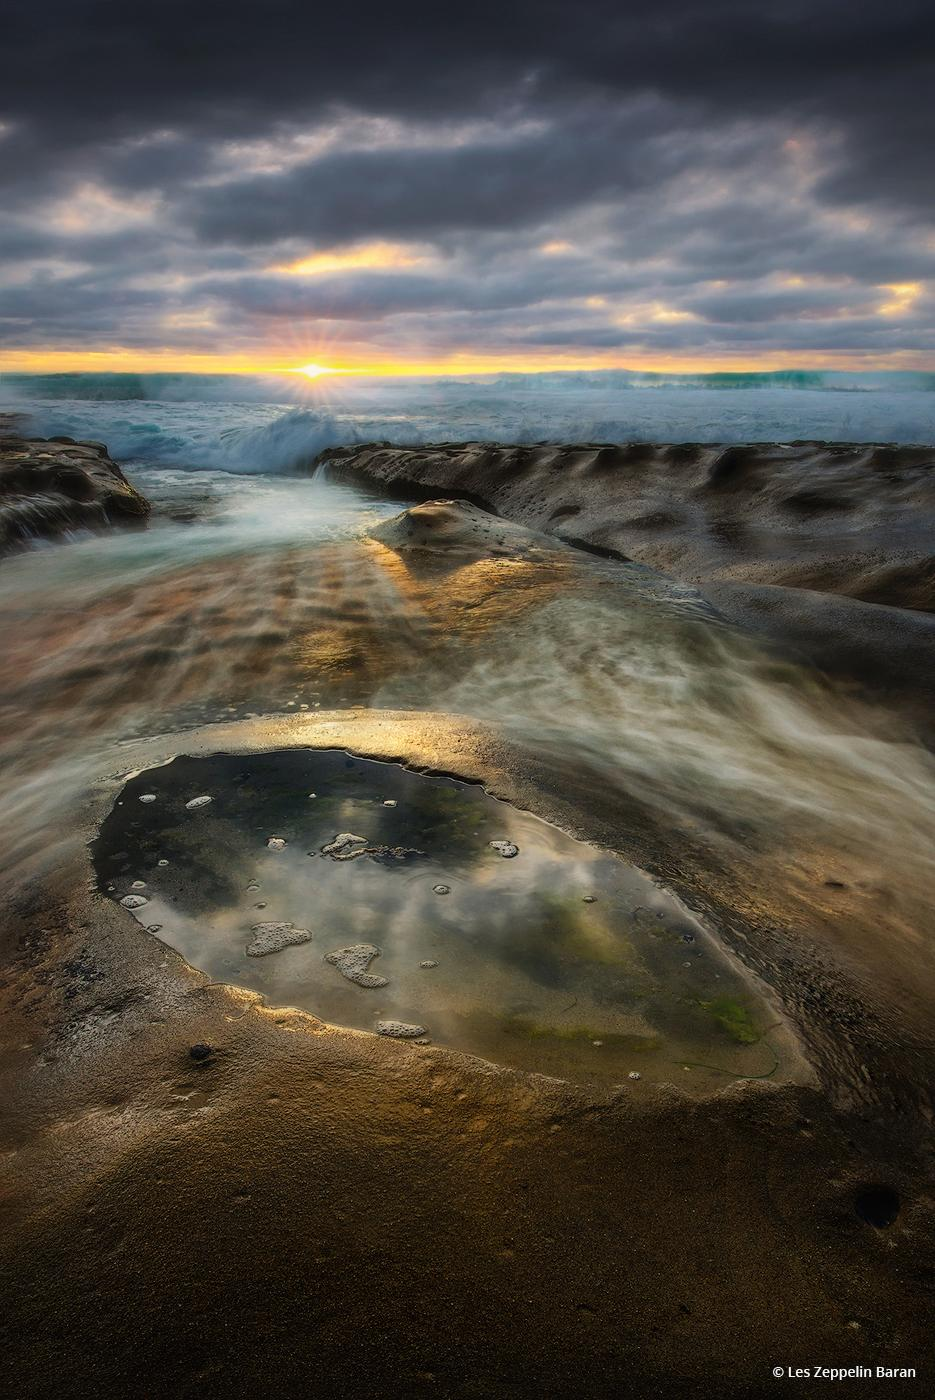 Today's Photo Of The Day is Stormwatch by Les Zeppelin Baran. Location: Hospitals reef, La Jolla, California.